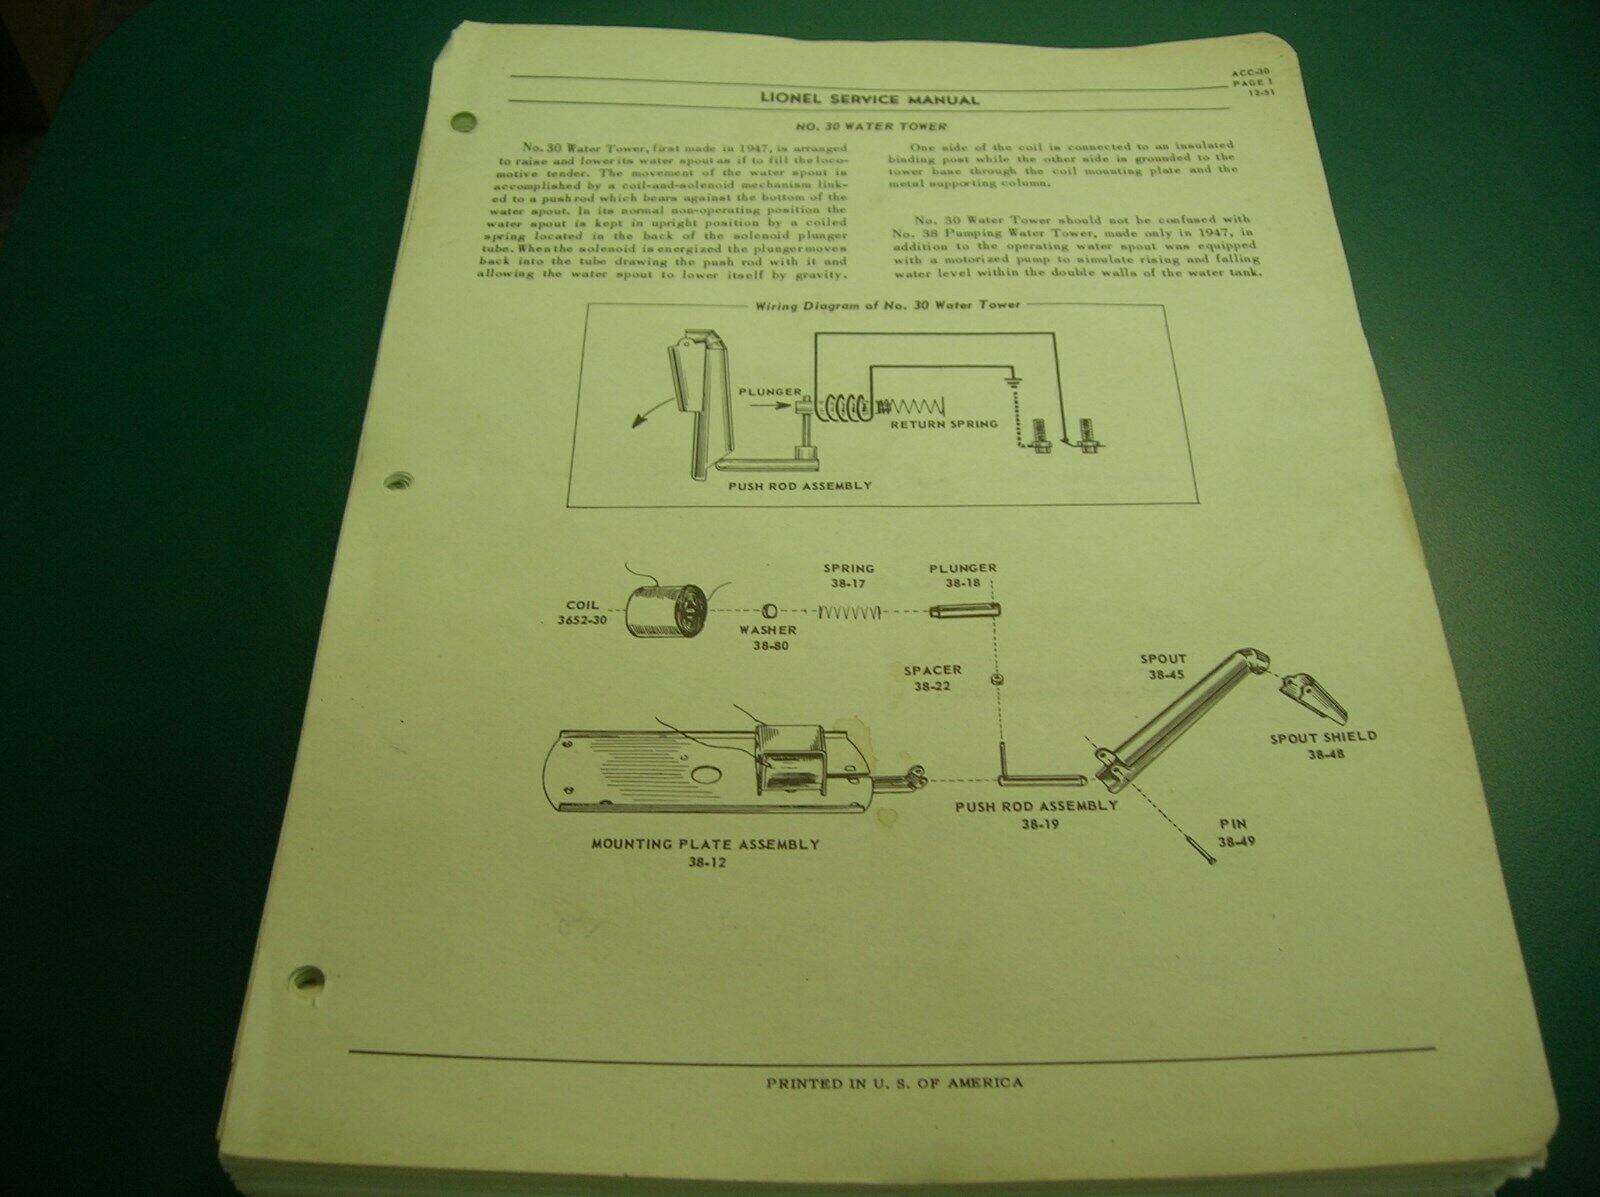 LIONEL ACCESSORY SERVICE uomoUAL PAGES (LAST PAGE PAGE PAGE TORN) - rendere OFFERS     7c6be4